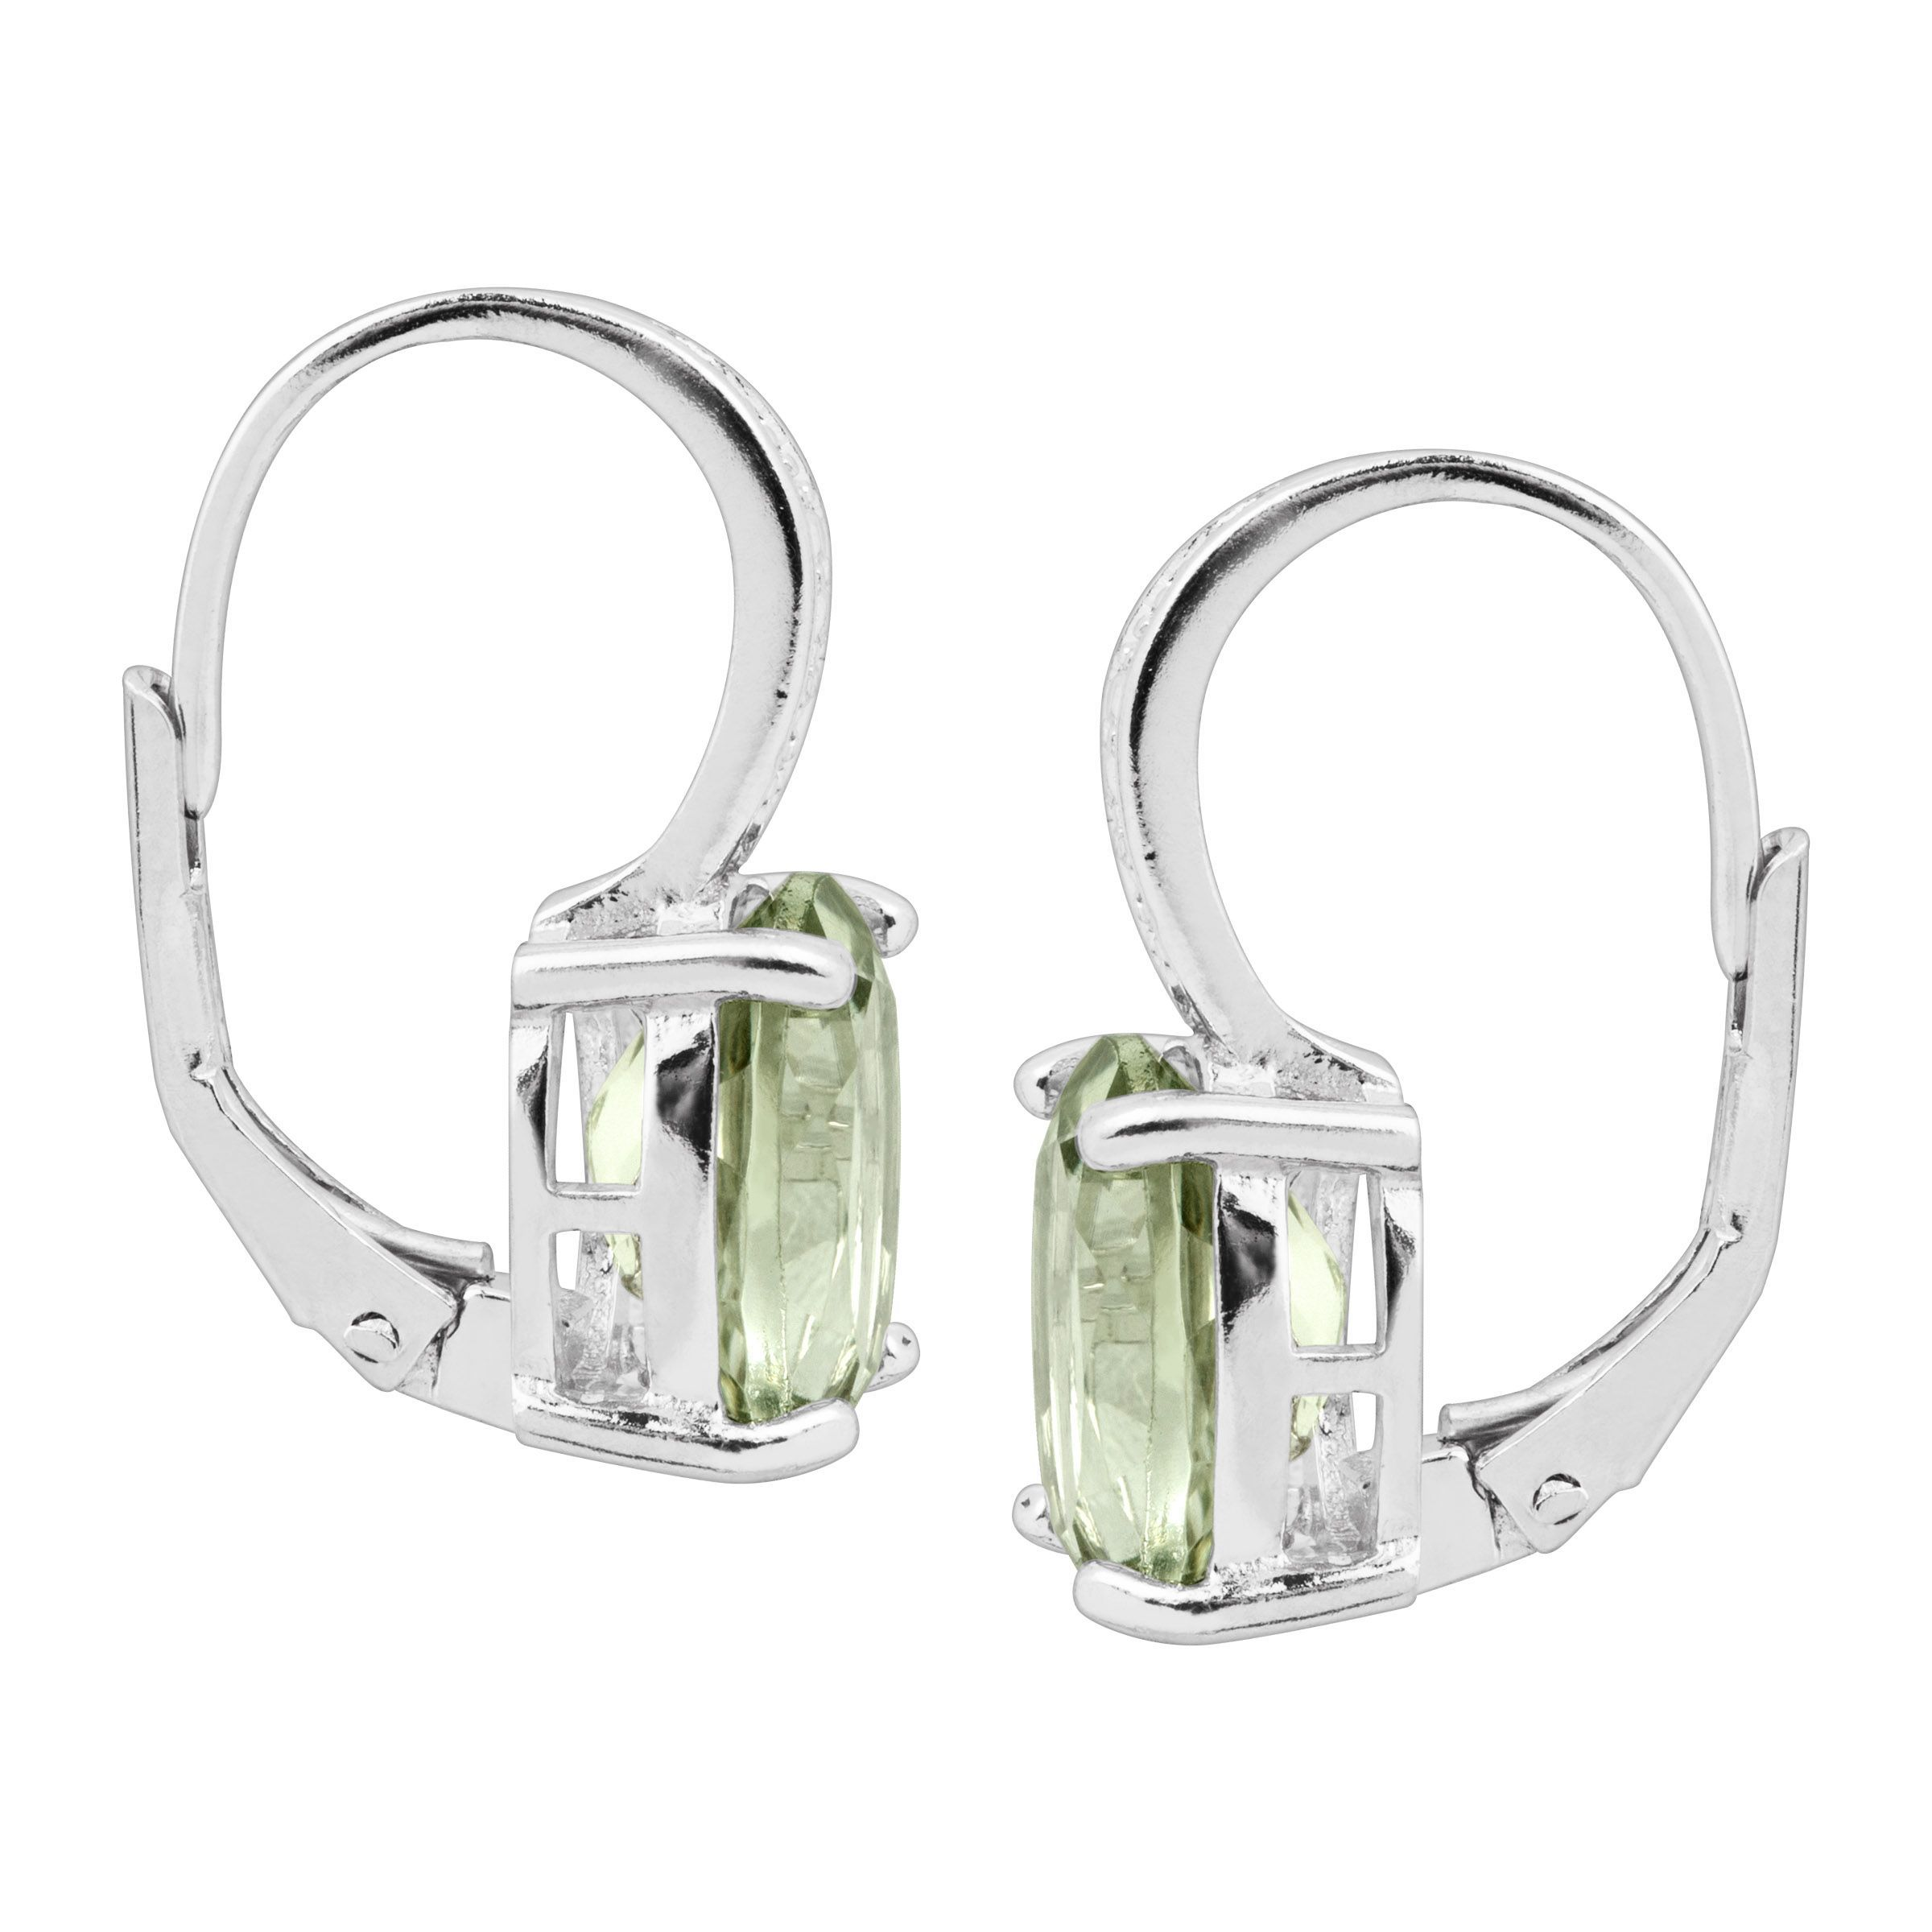 Natural-Gemstone-Drop-Earrings-with-Diamonds-in-Sterling-Silver thumbnail 31